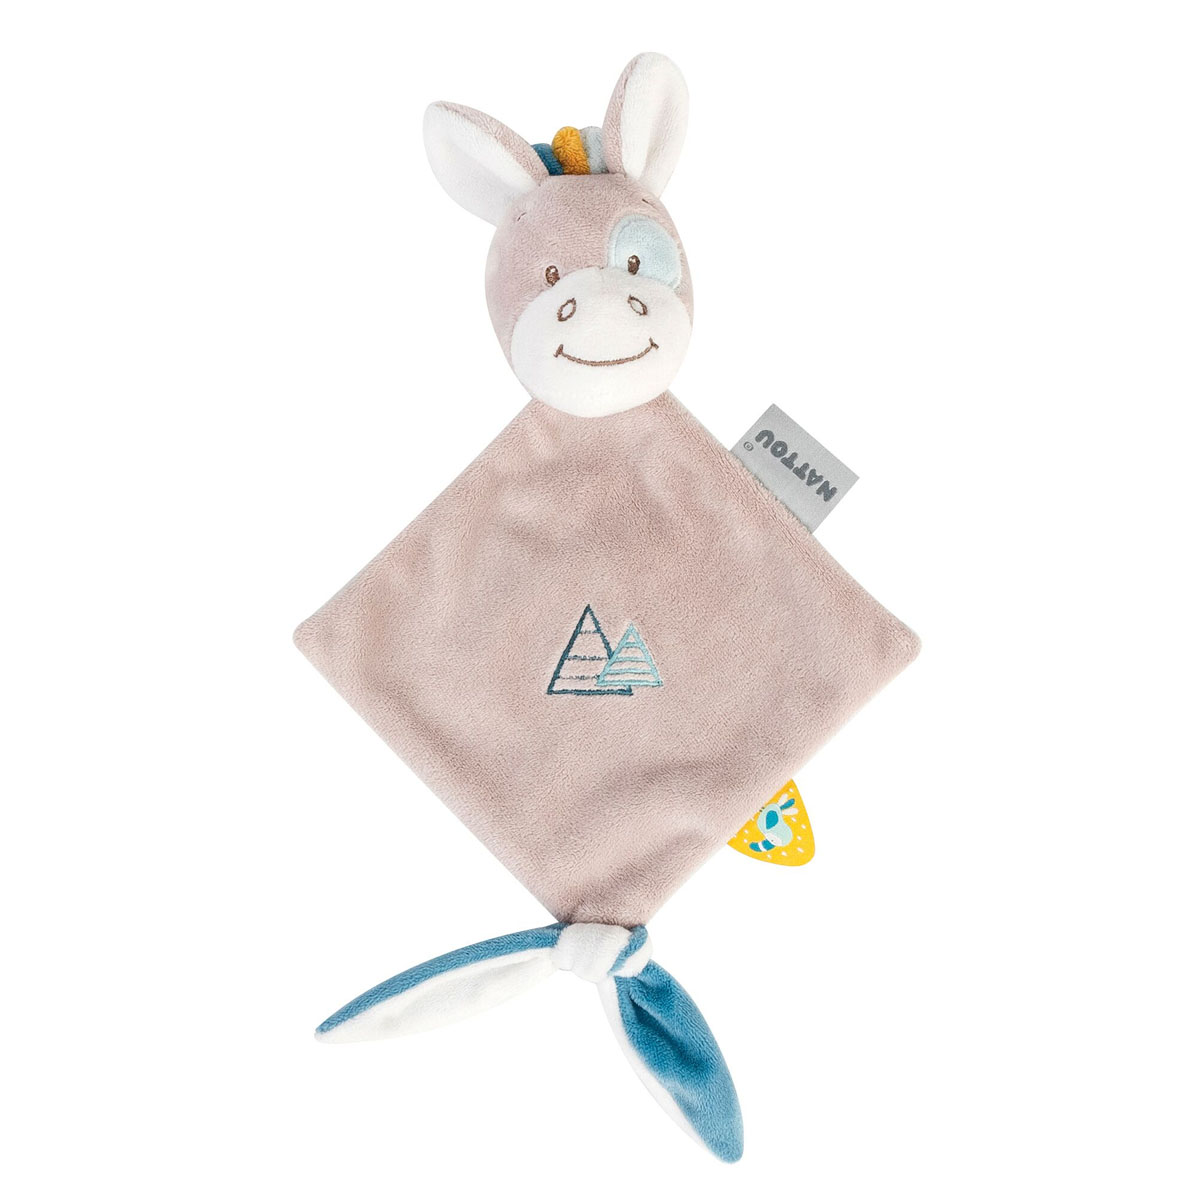 Tim & Tiloo mini doudou Tim le cheval  de Nattou